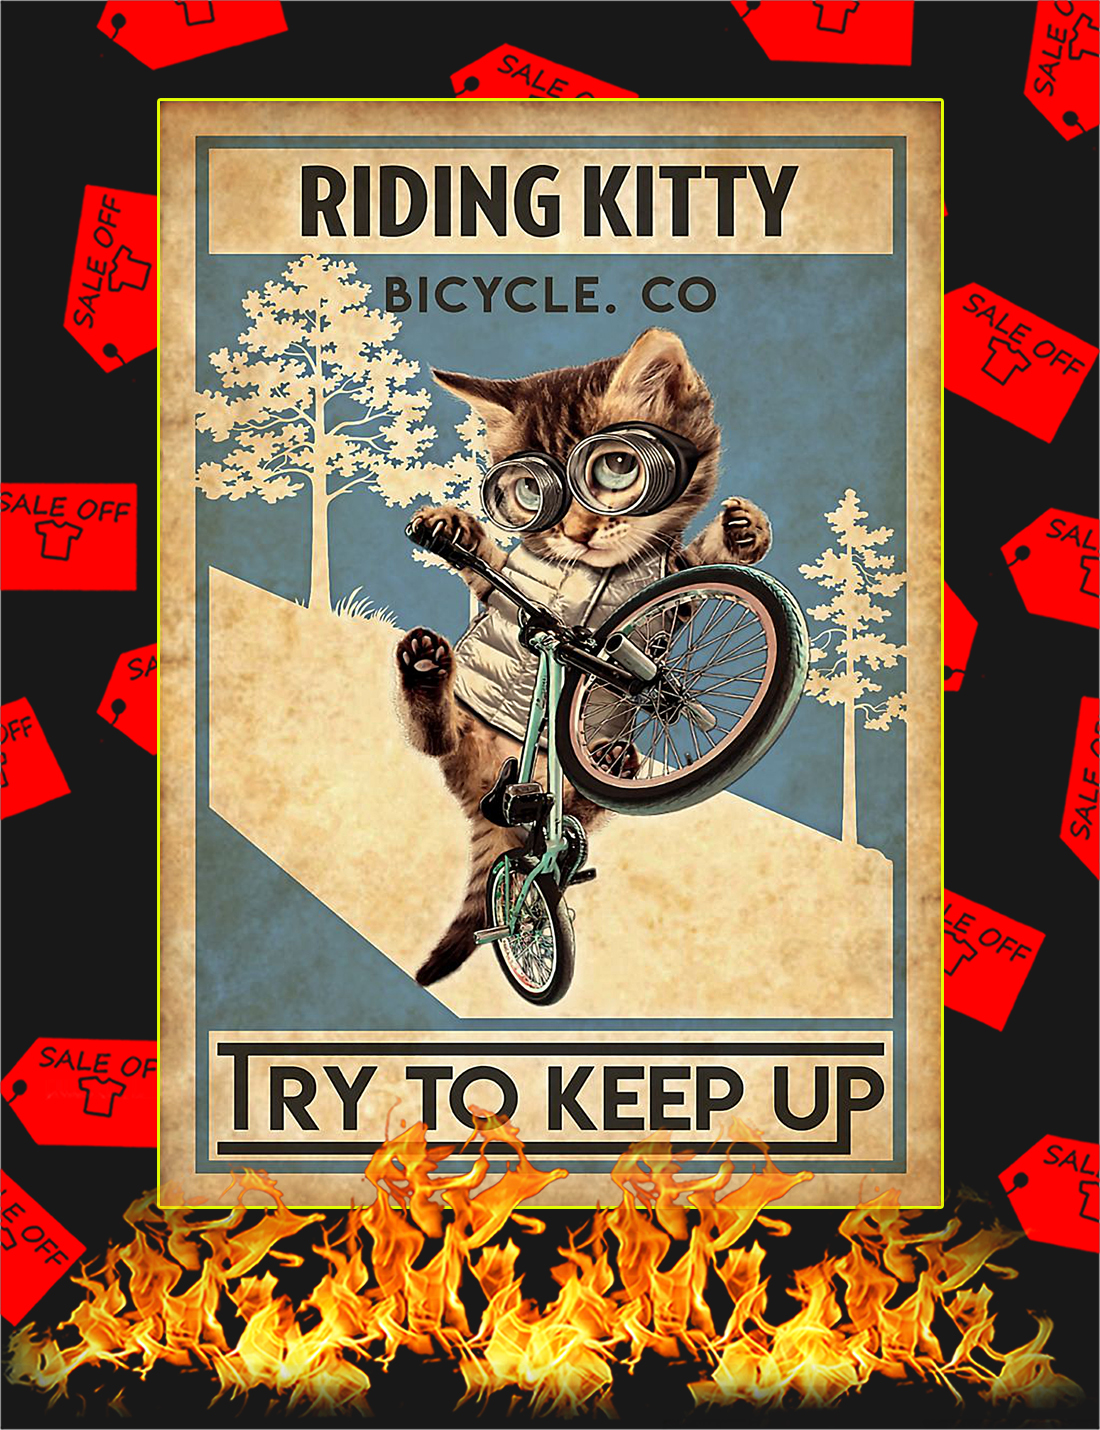 Riding kitty bicycle co try to keep up poster - A4